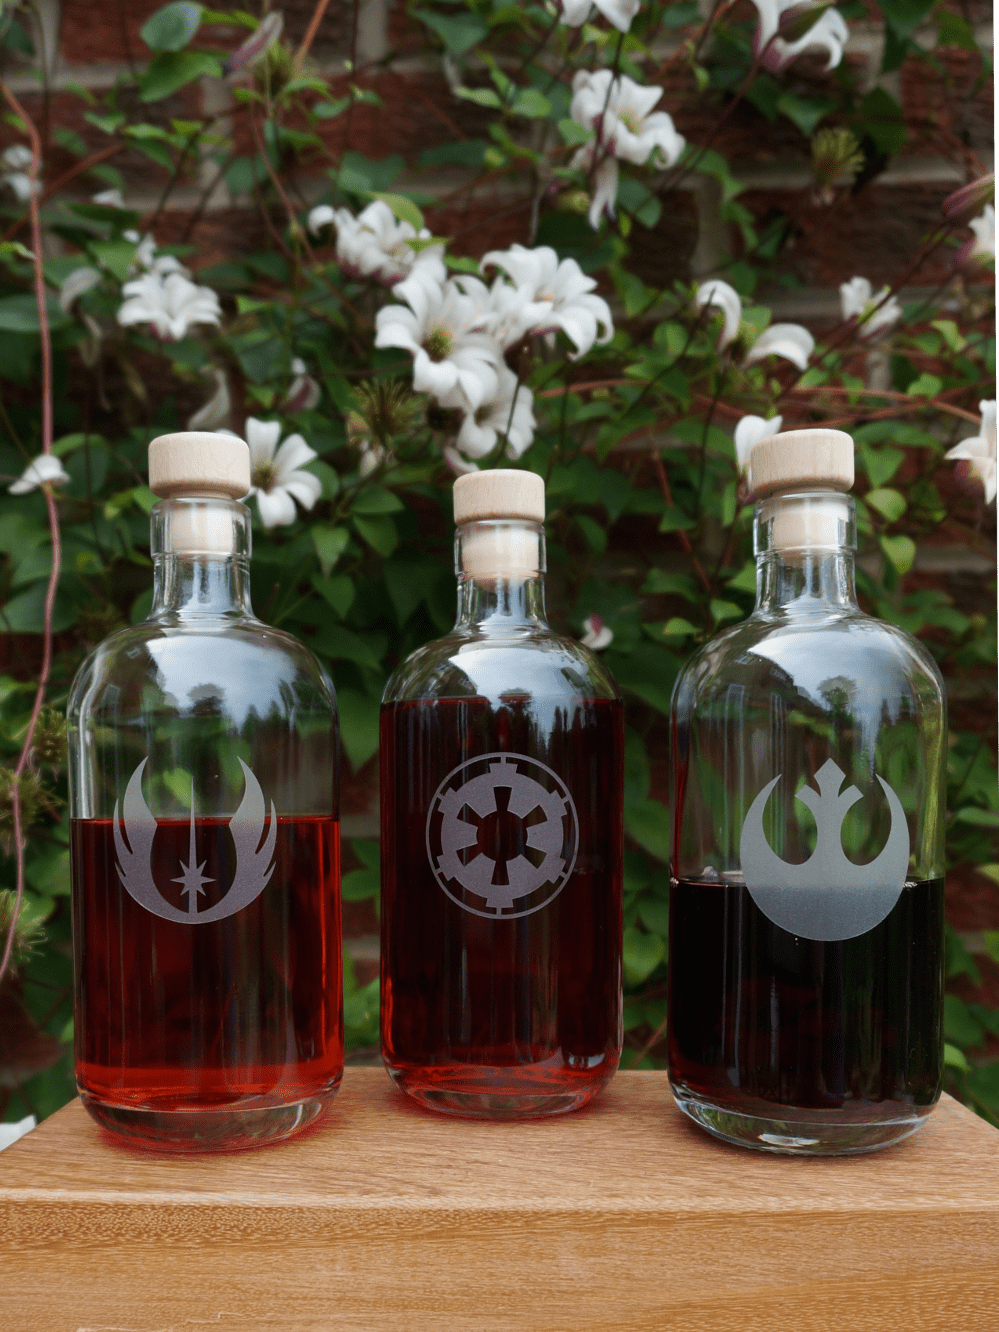 Strawberry, raspberry and blueberry vodka in Star Wars bottles